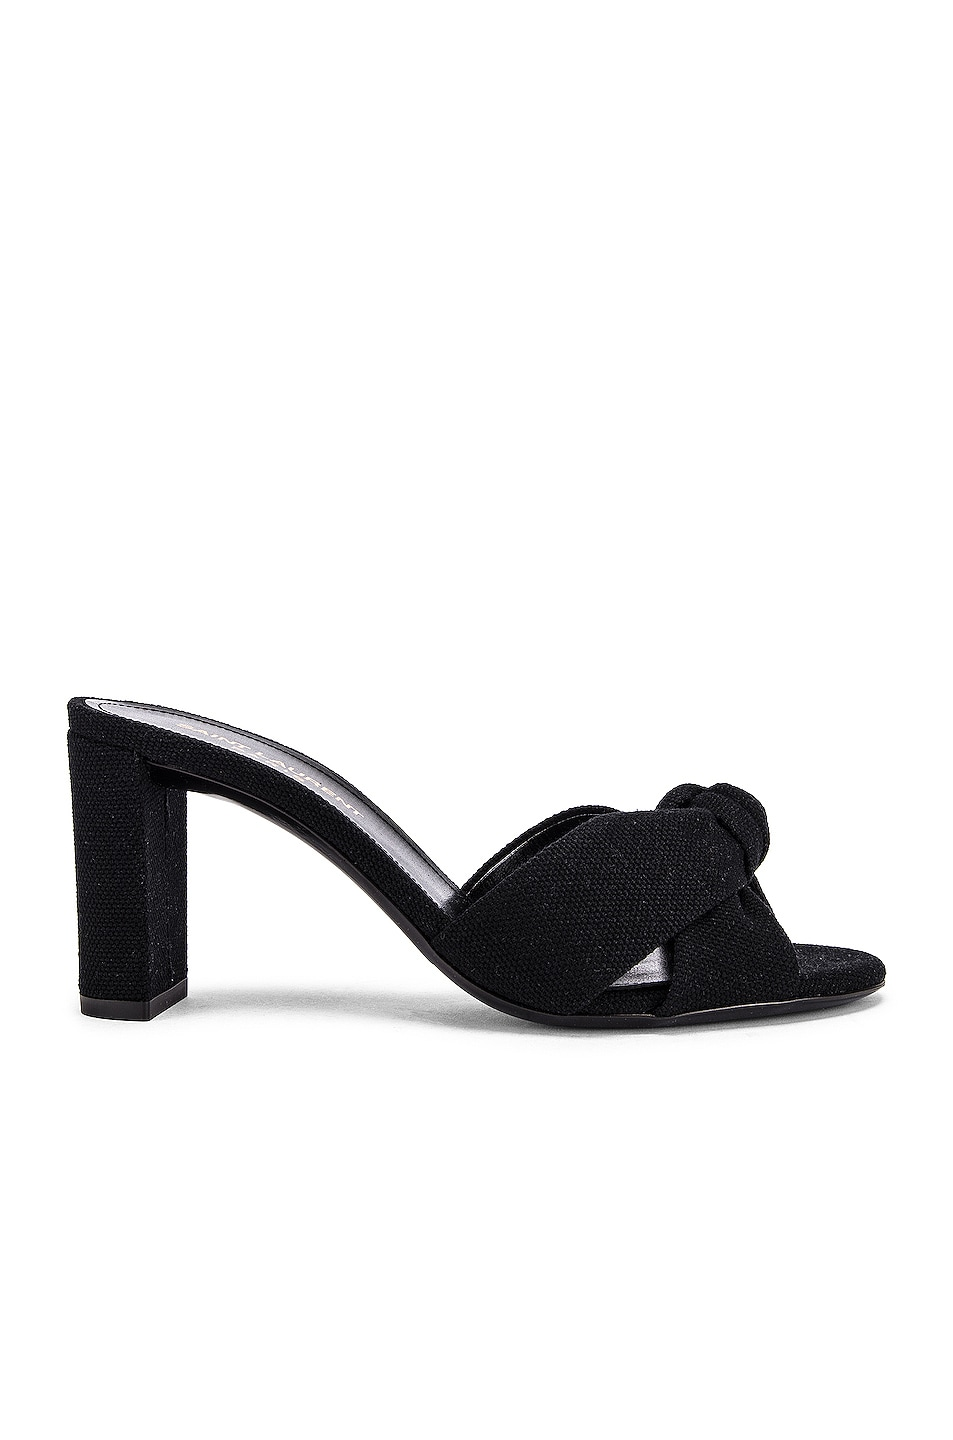 Image 1 of Saint Laurent Loulou Mule Sandals in Nero